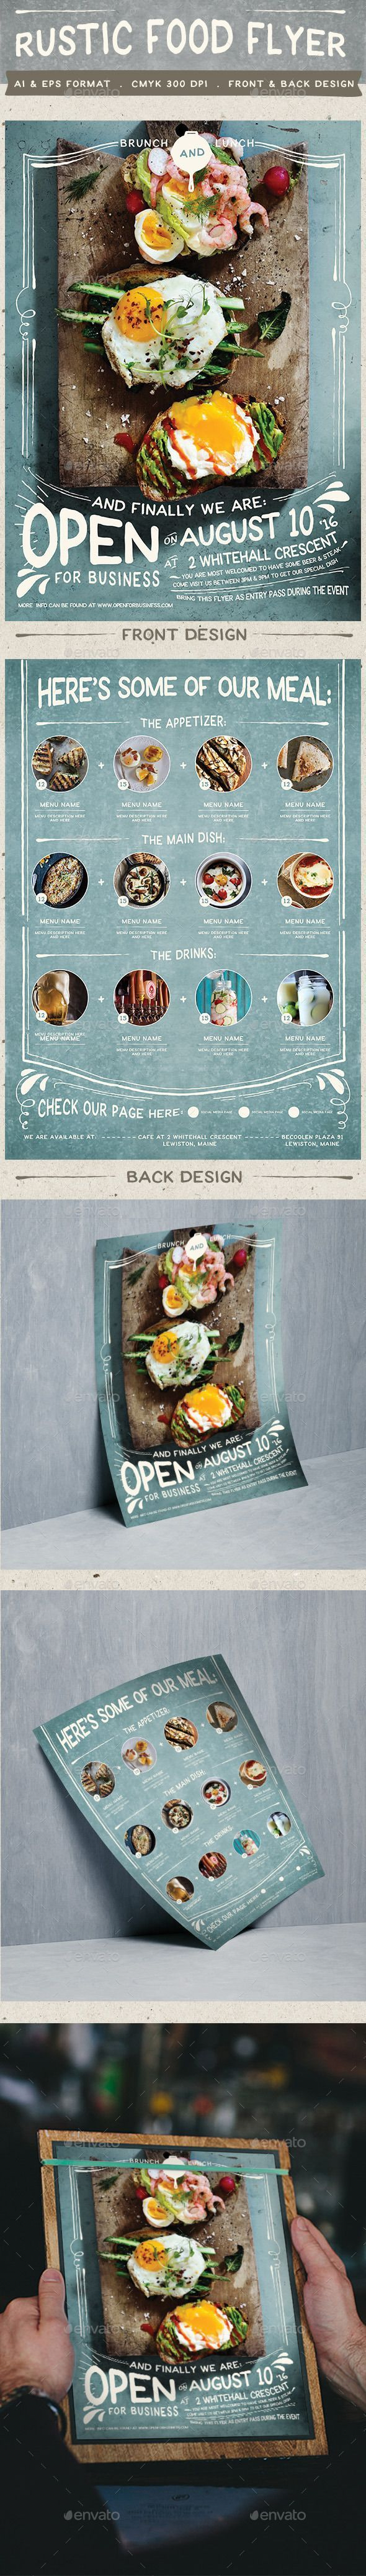 Rustic Food Promo Flyer Template